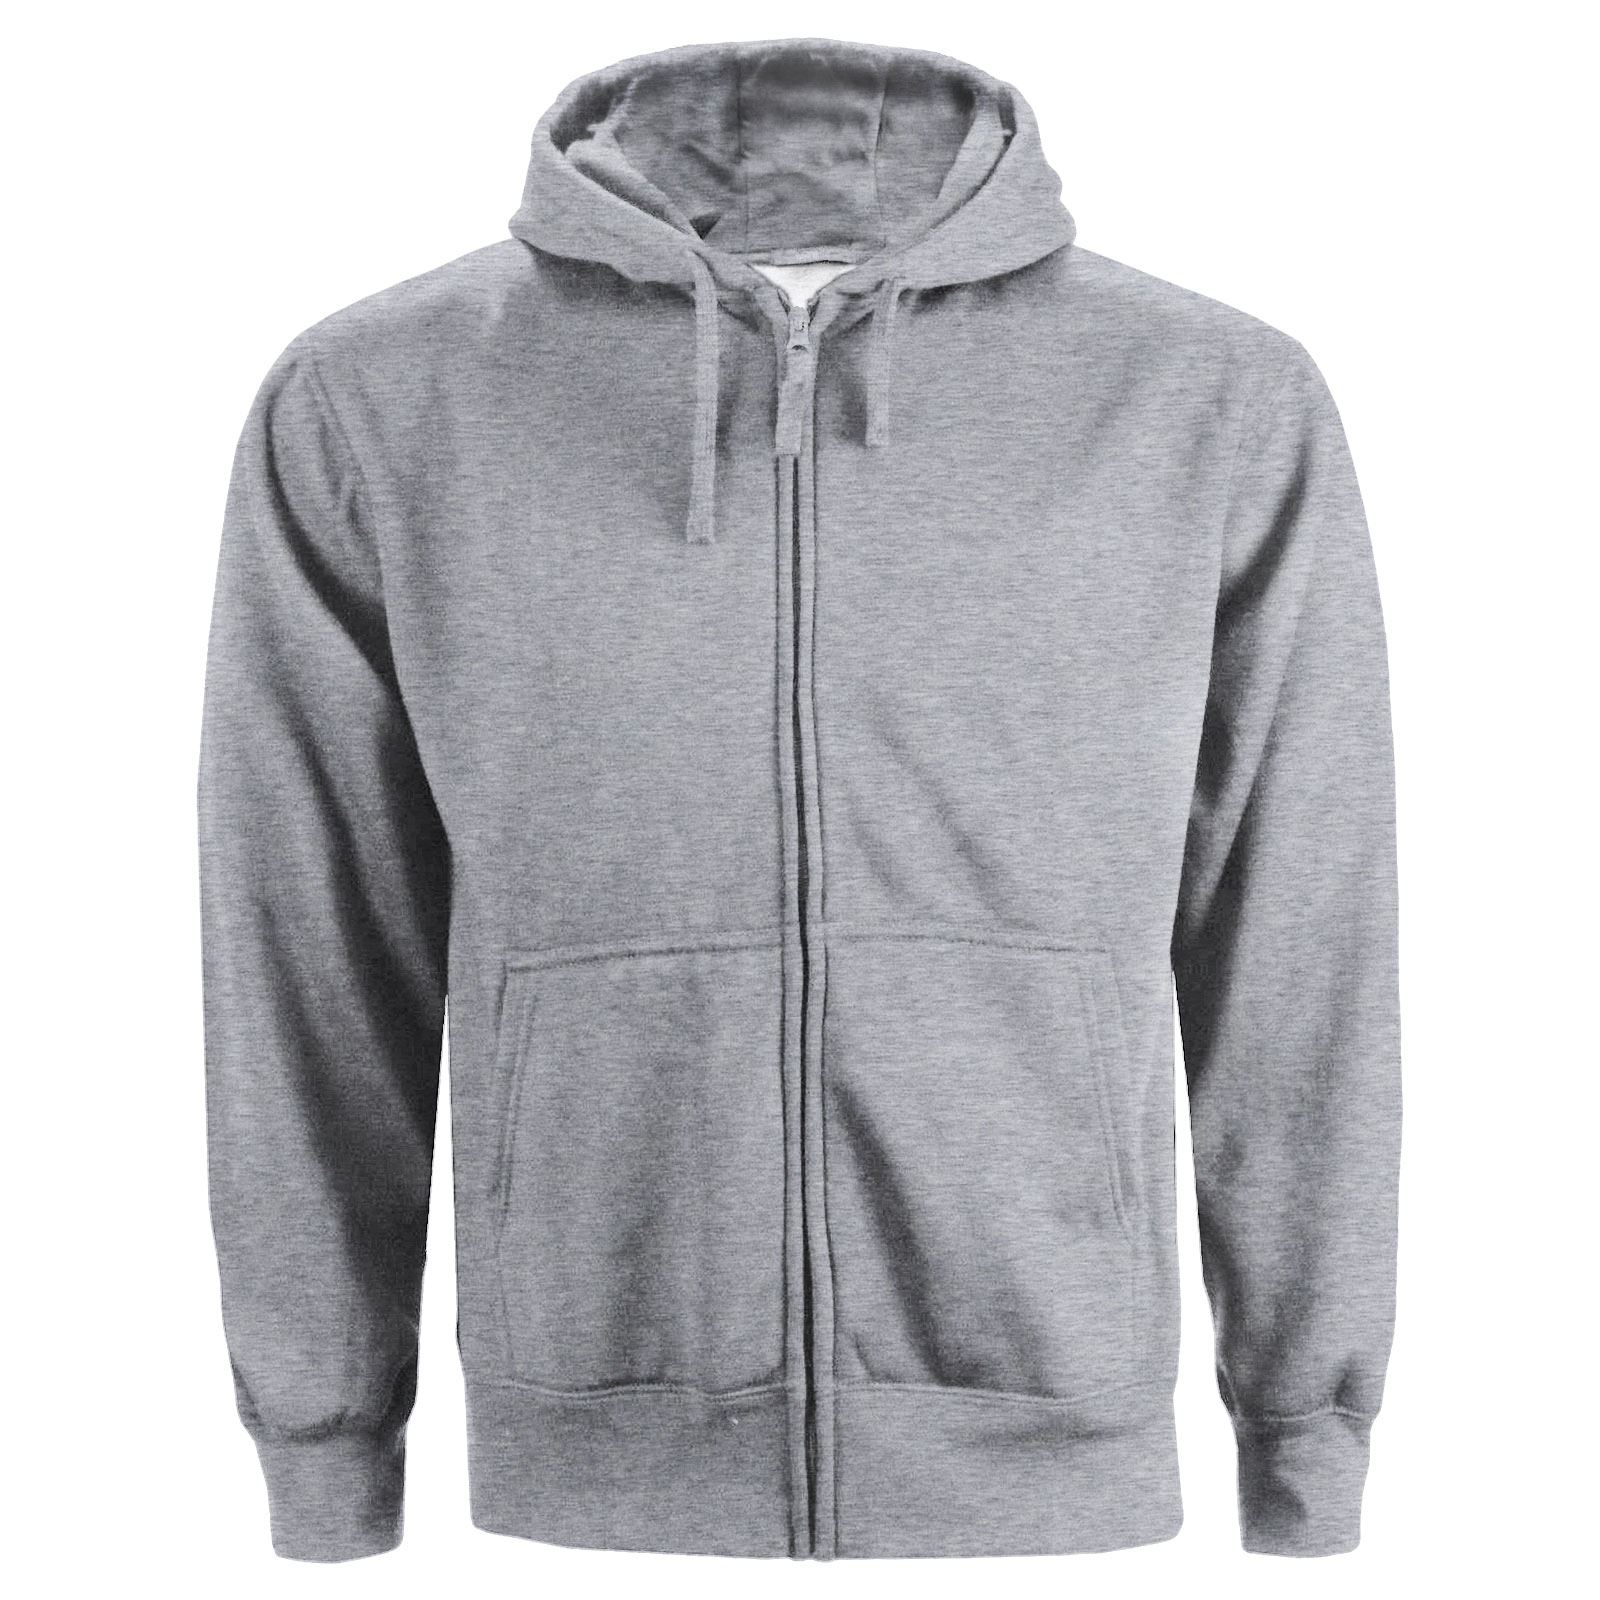 Carhartt Men's Midweight Hooded Pullover Sweatshirt. A sweatshirt for all seasons and definitely a Carhartt favorite, this mid-weight hooded pullover sweatshirt is made from 50% cotton and 50% polyester; comfortable and breathable, with an attached, camo-lined, hood equipped with a draw cord plus a front hand warming pocket, it is finished off with a Carhartt label sewn to the pocket.